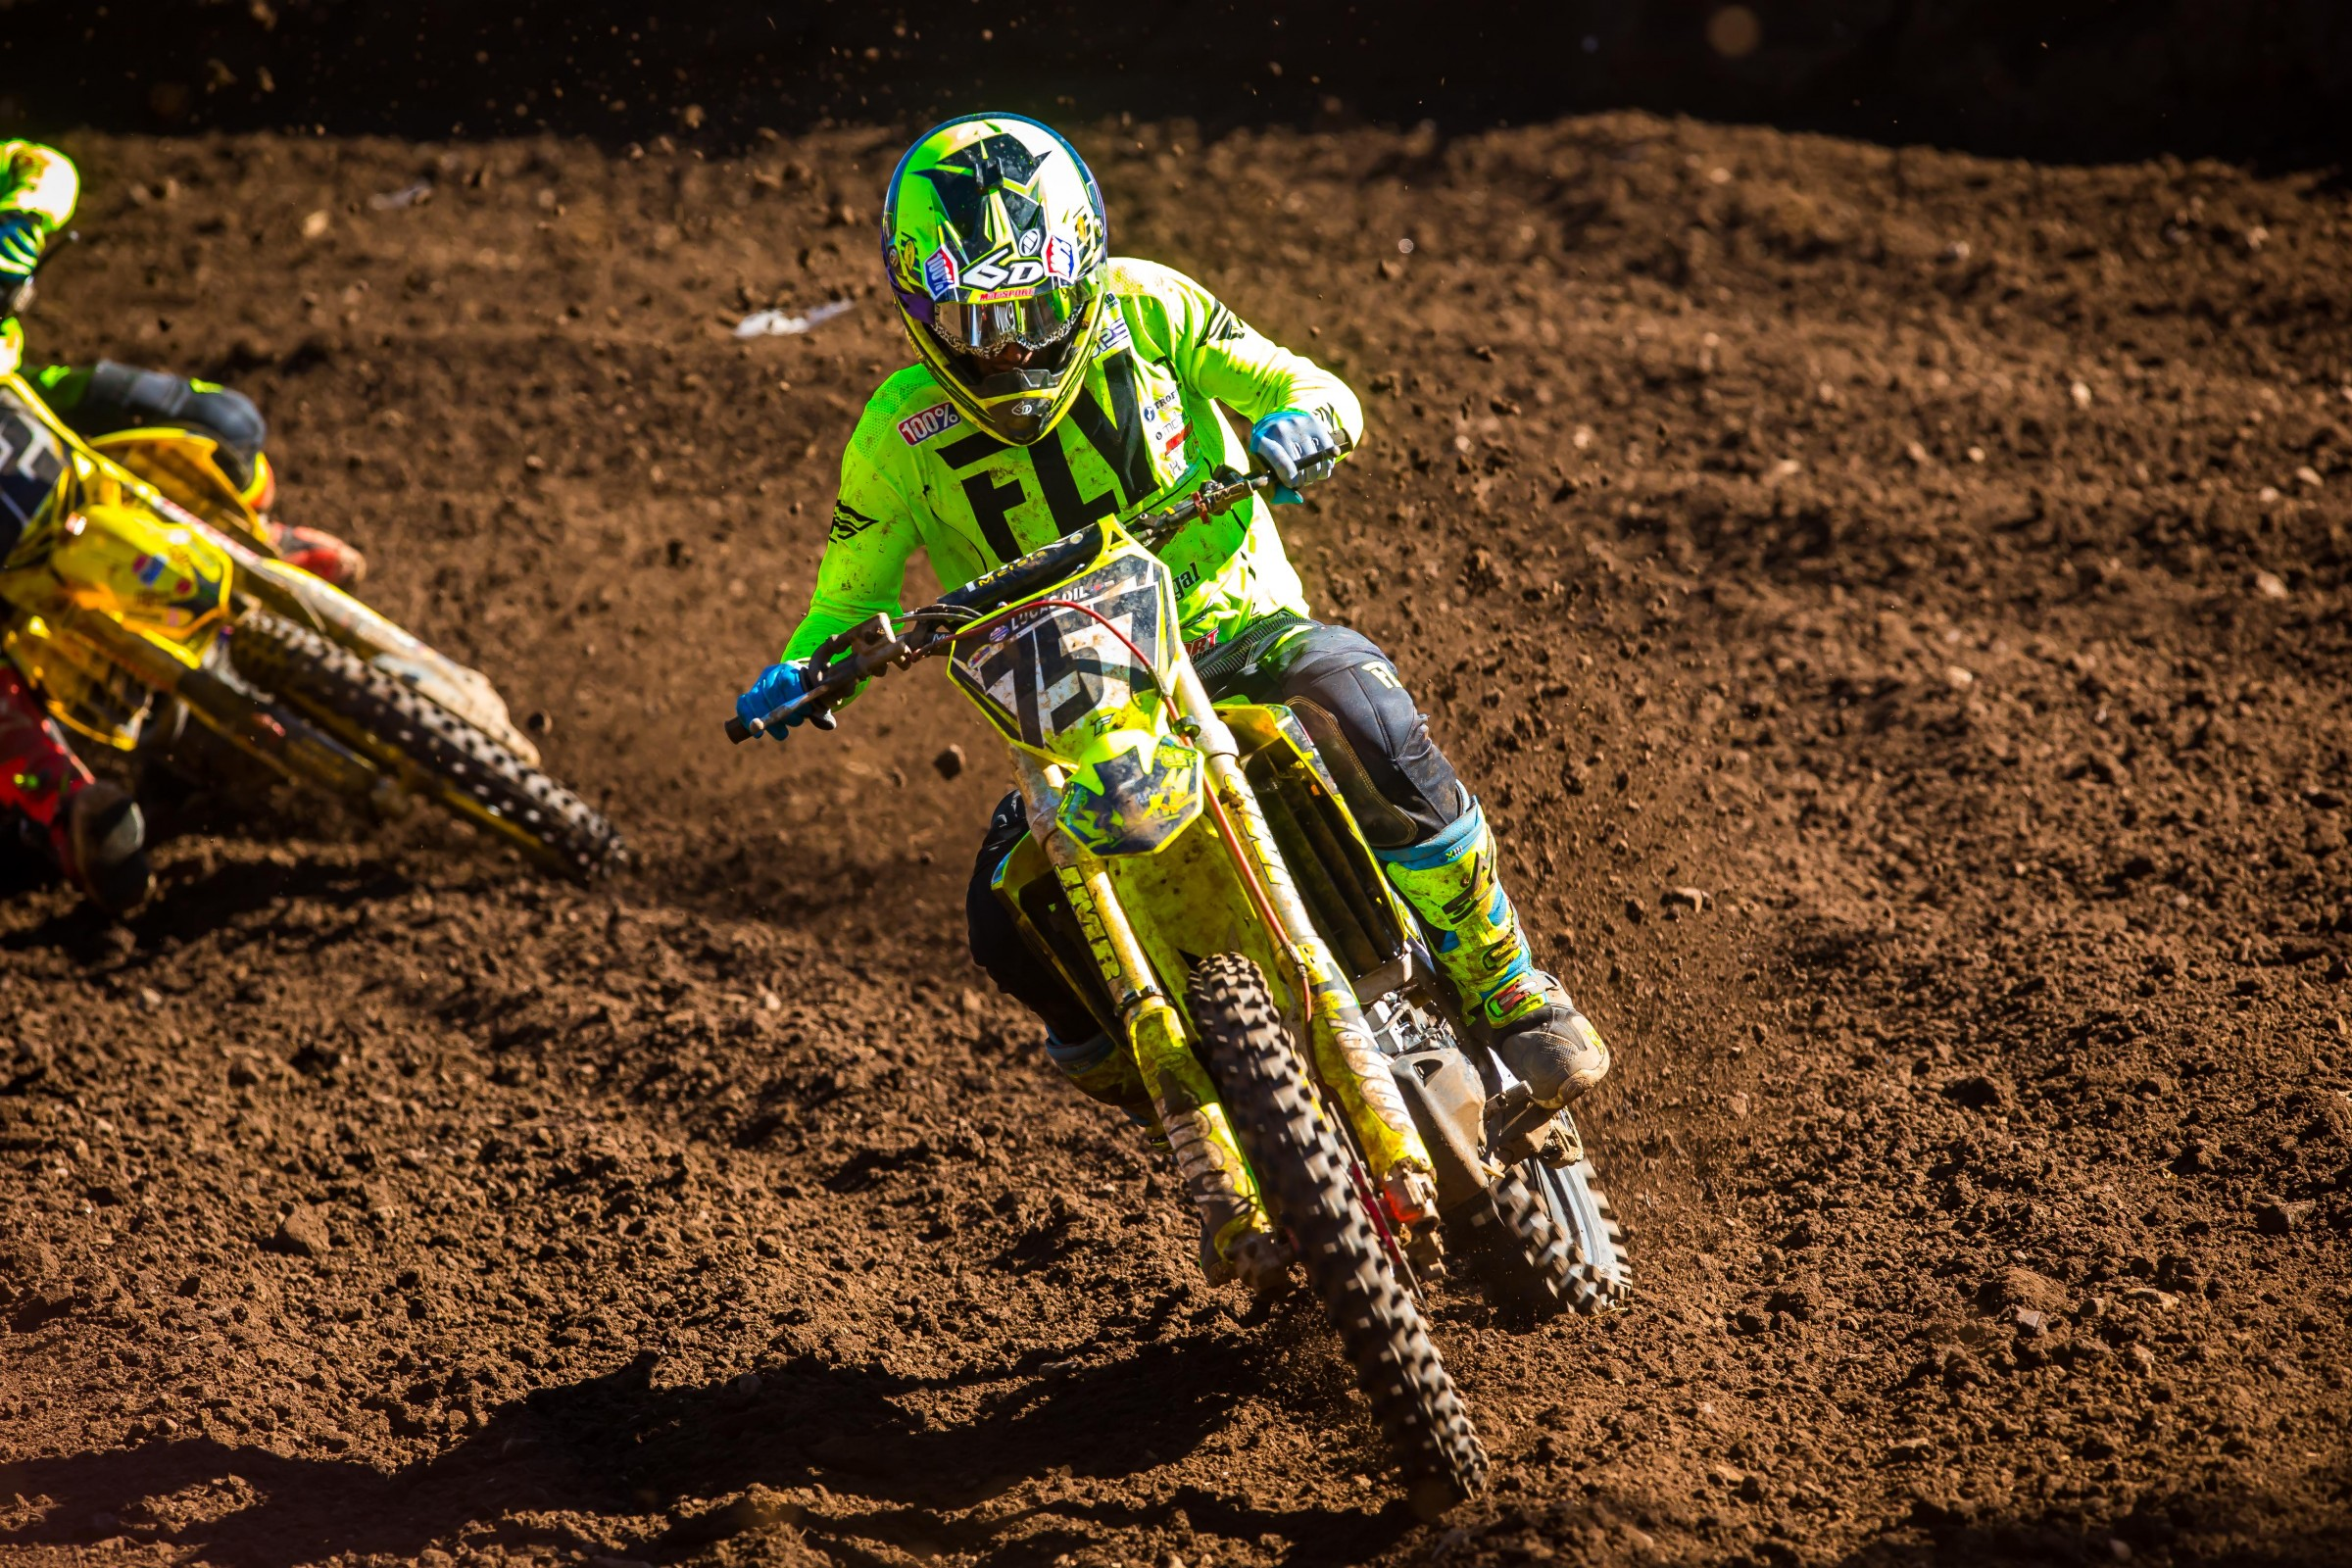 In six career appearances at Washougal, Weeck has only finished outside the top 20 overall once, and in 2014 he finished ninth in the second 450 moto.